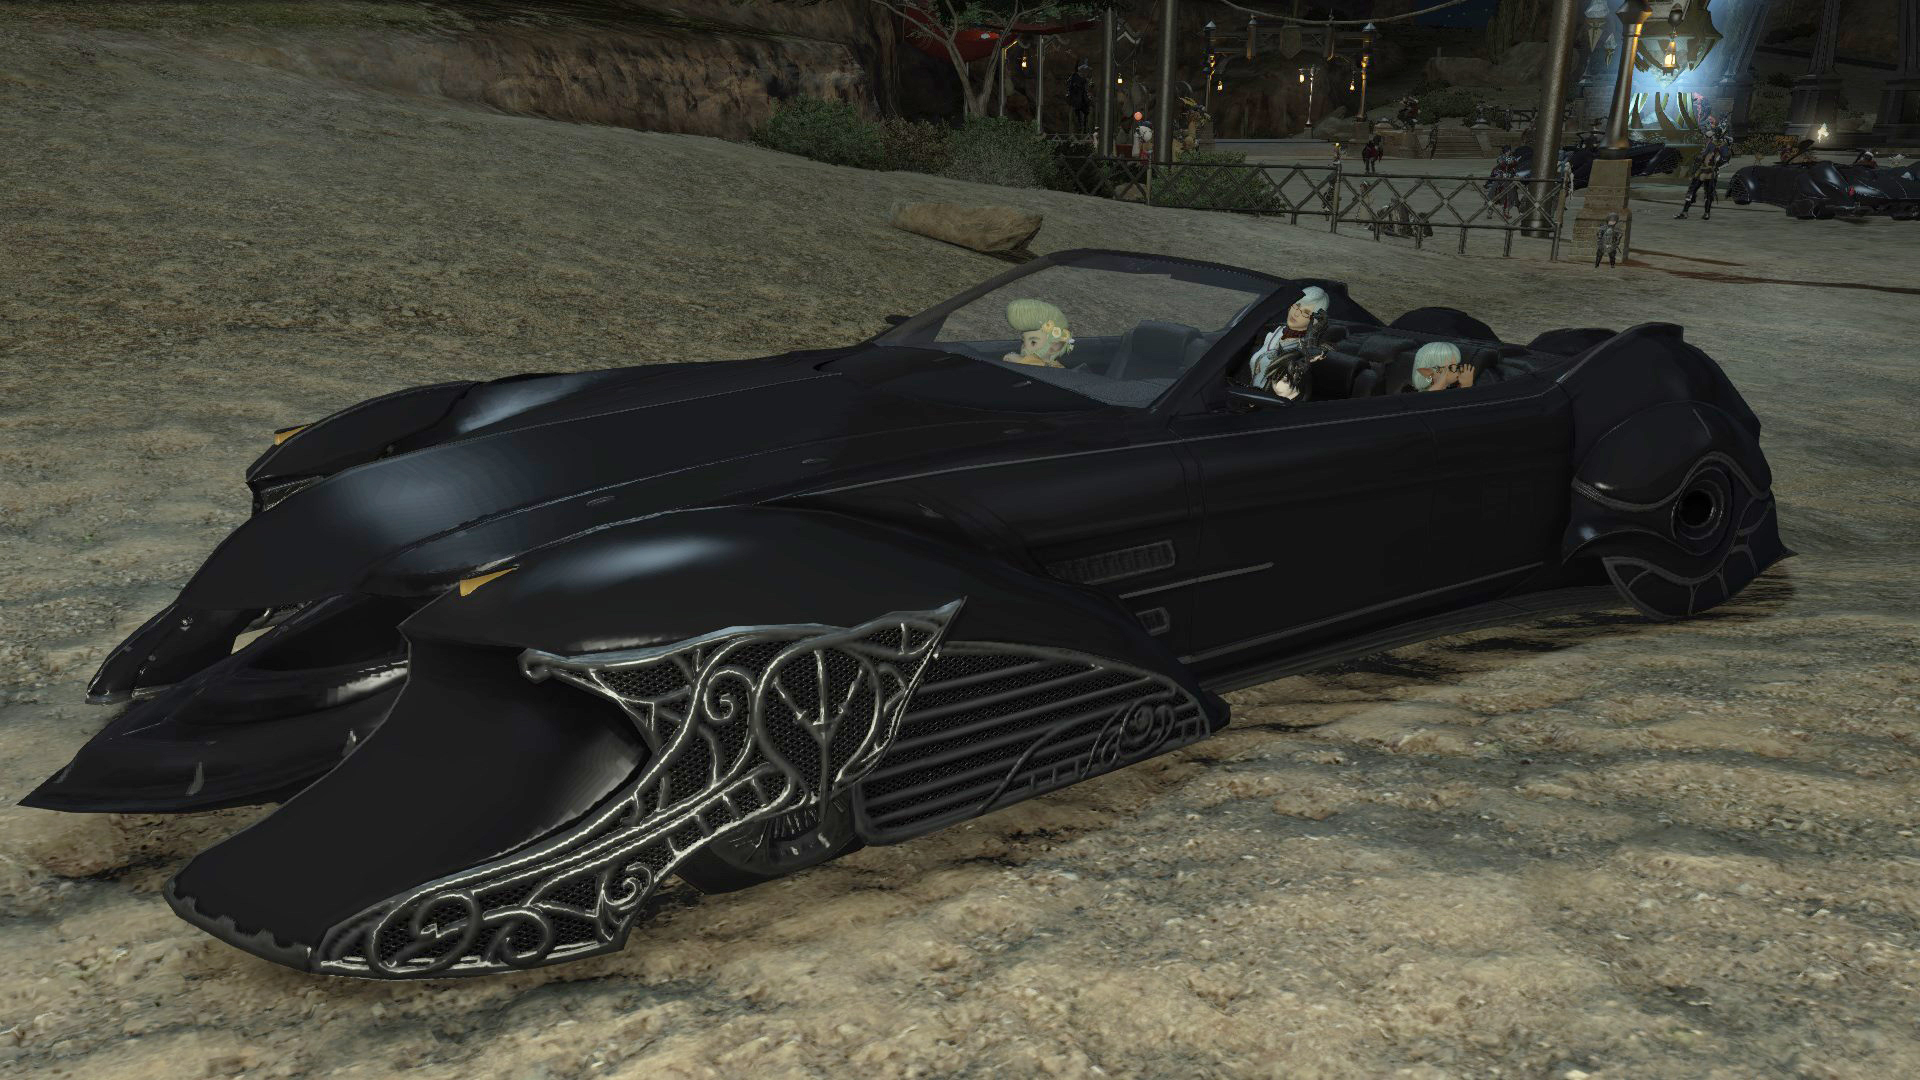 Final Fantasy 15's Regalia car is now in FF14, and everything is chaos